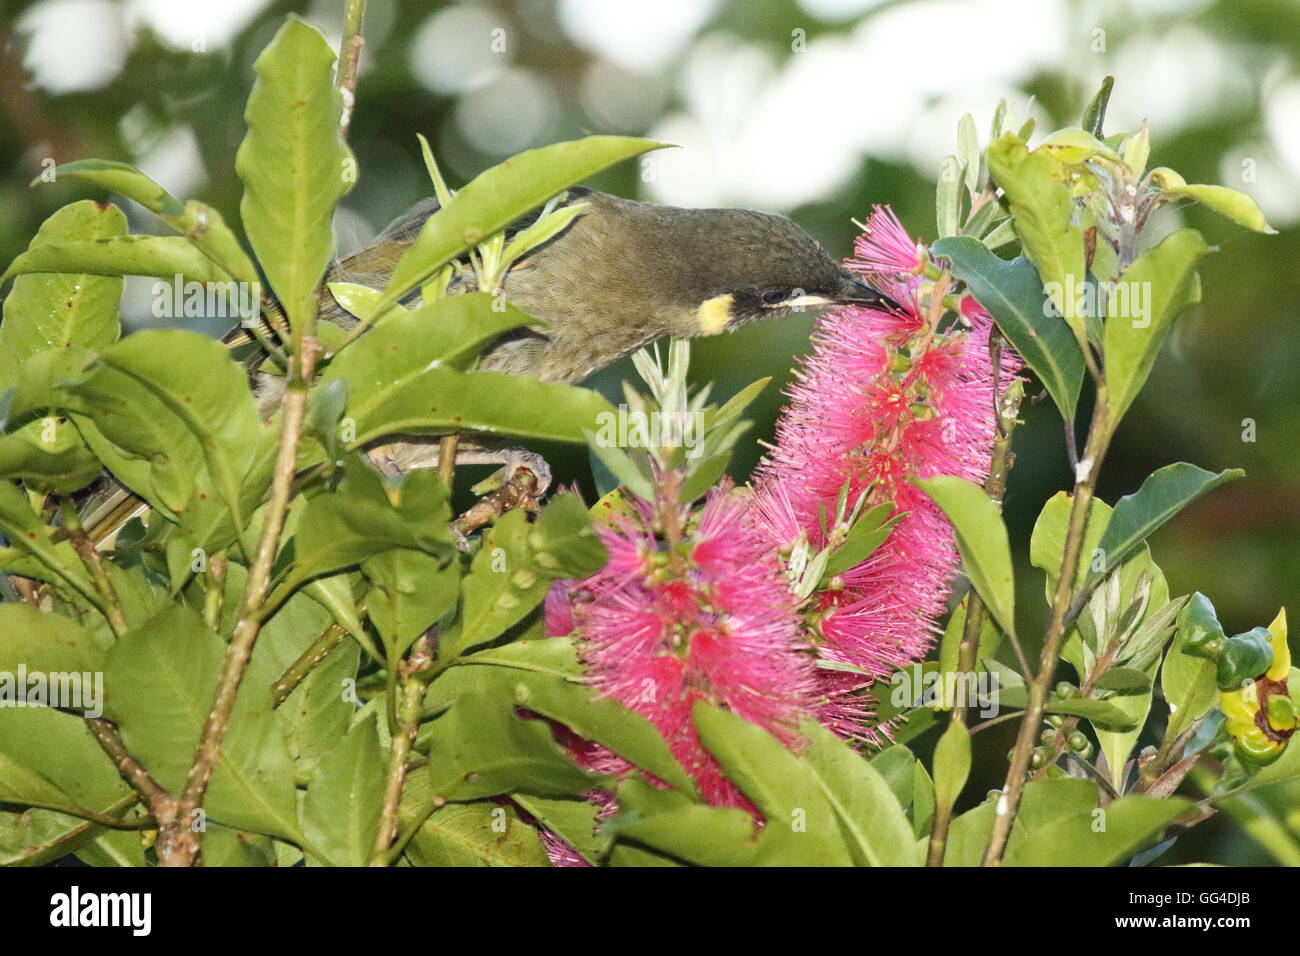 A Lewin's Honeyeater feeding on a flower. - Stock Image